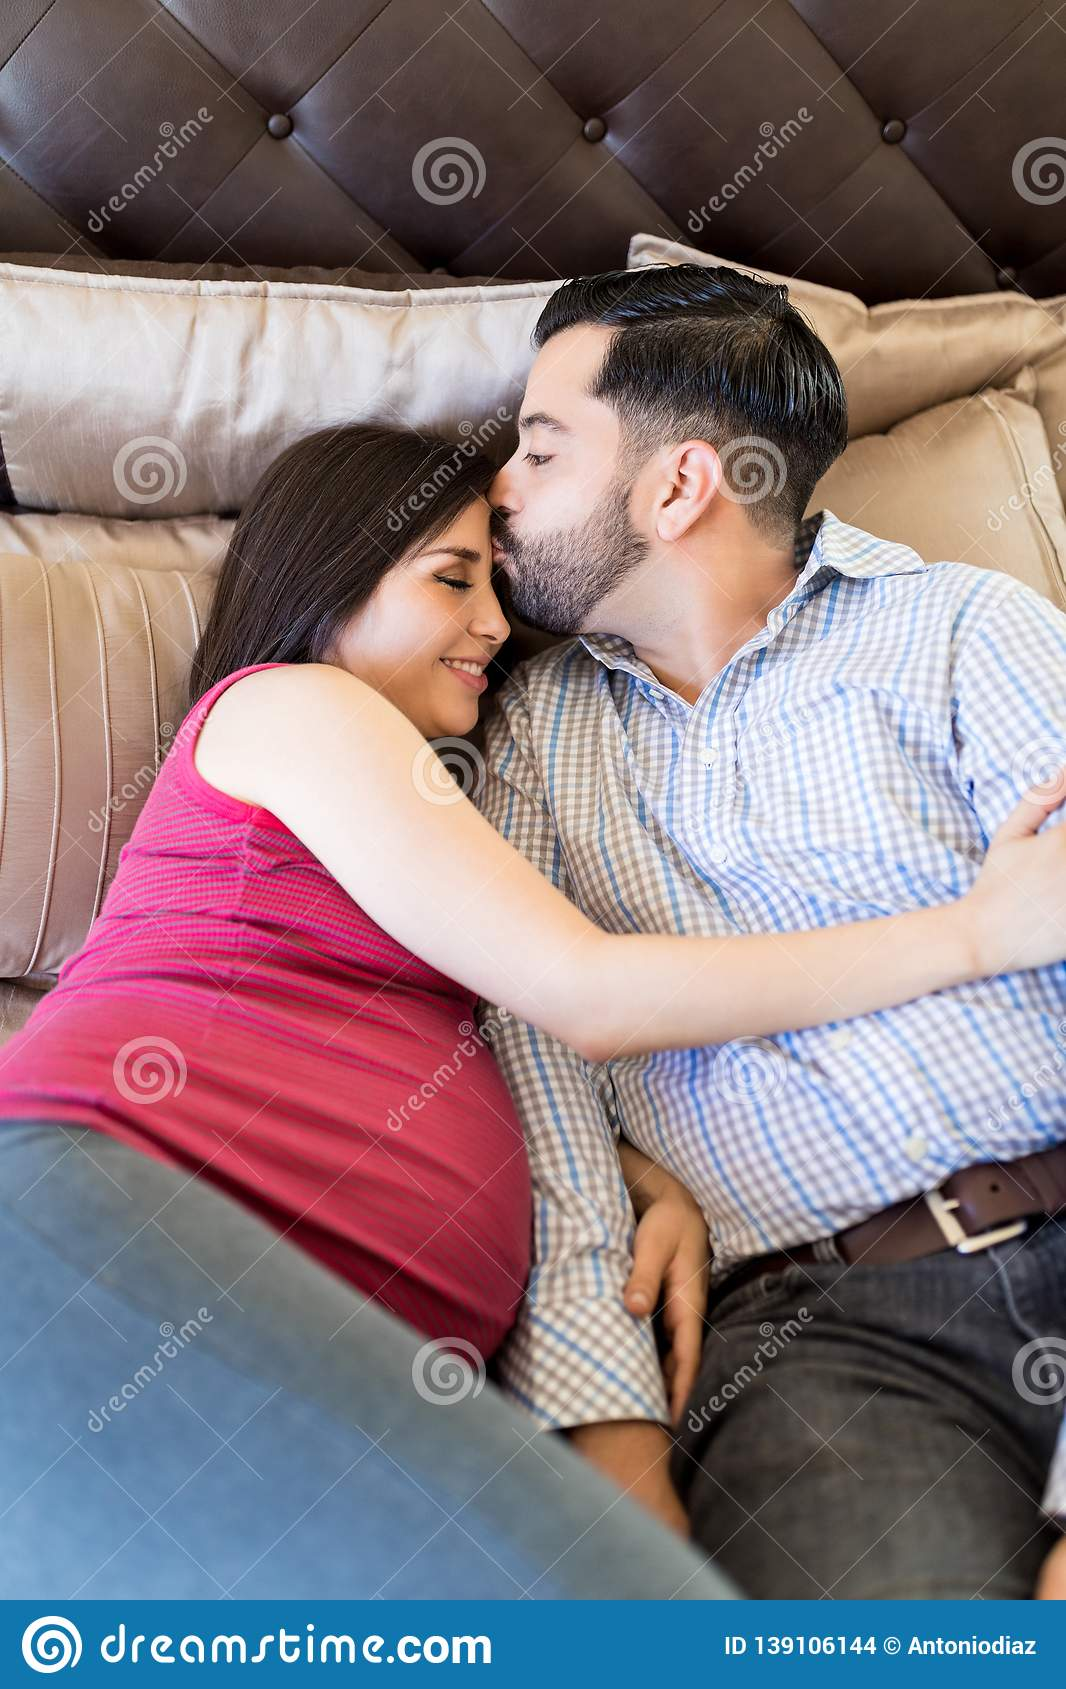 Good Night Kiss Couple Photos Free Royalty Free Stock Photos From Dreamstime